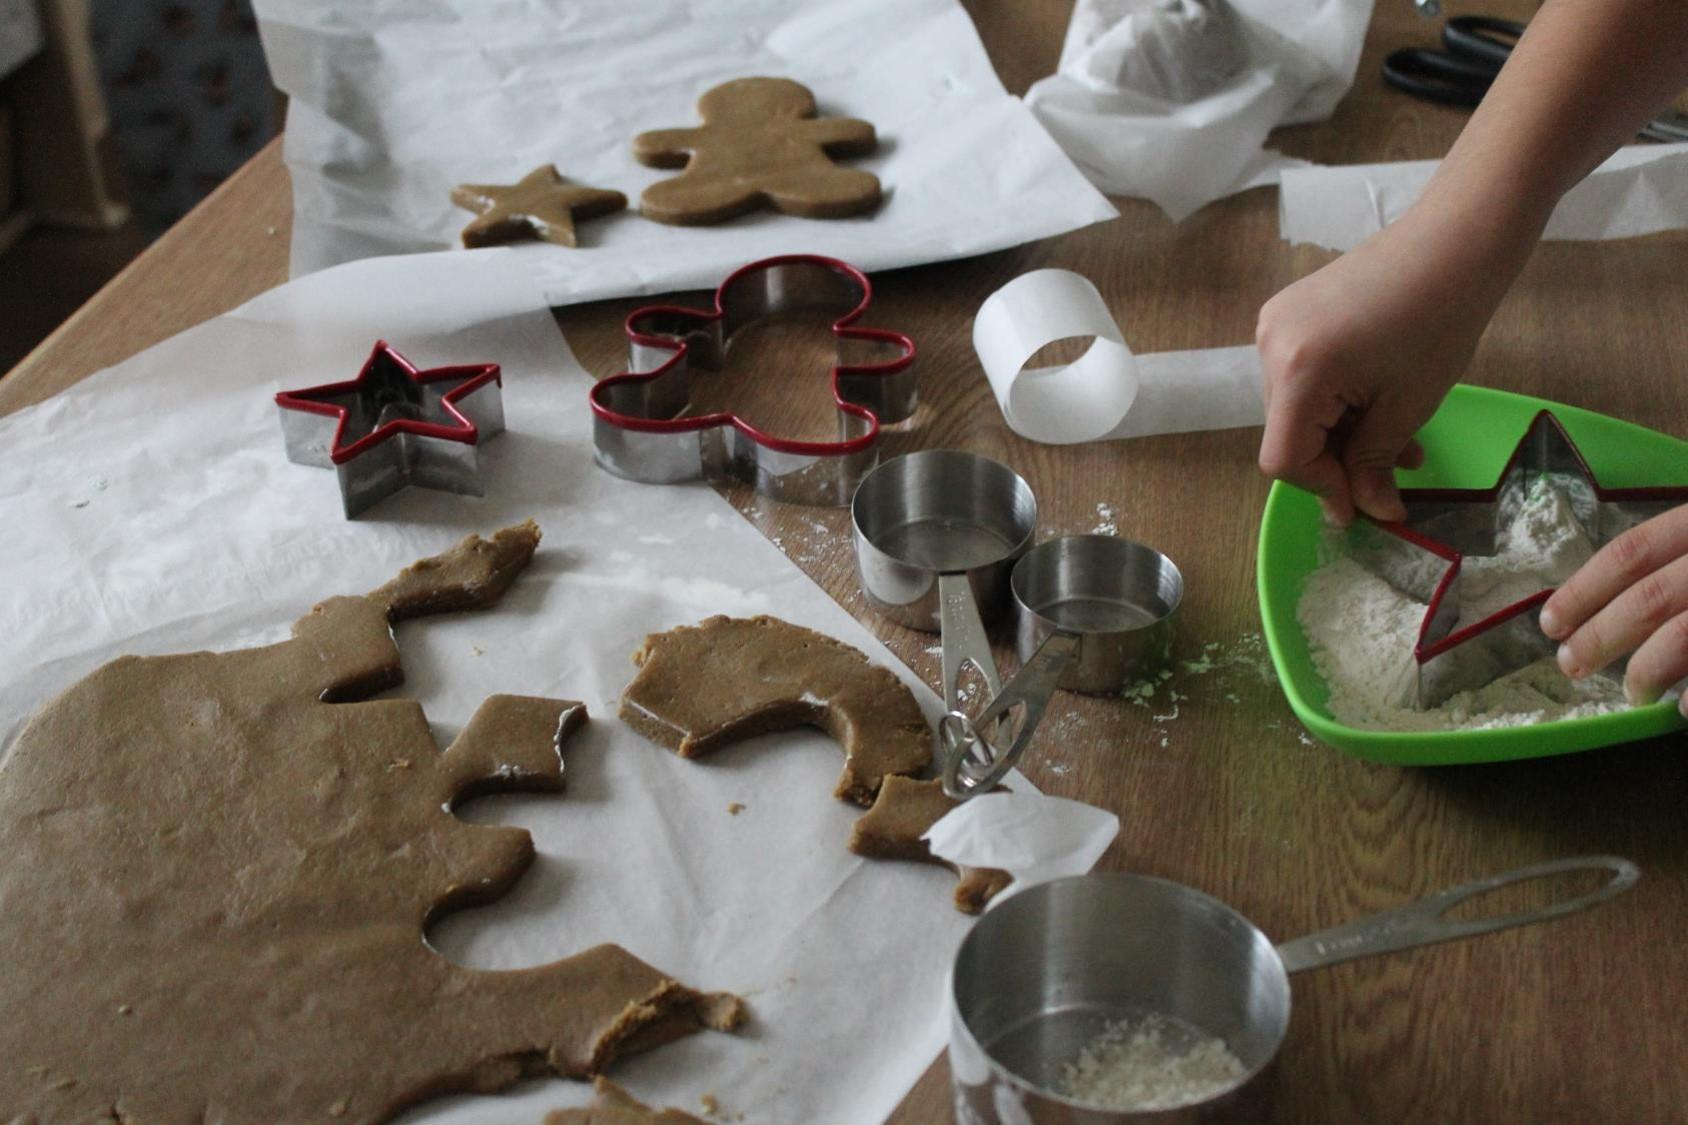 gingerbread men preparation